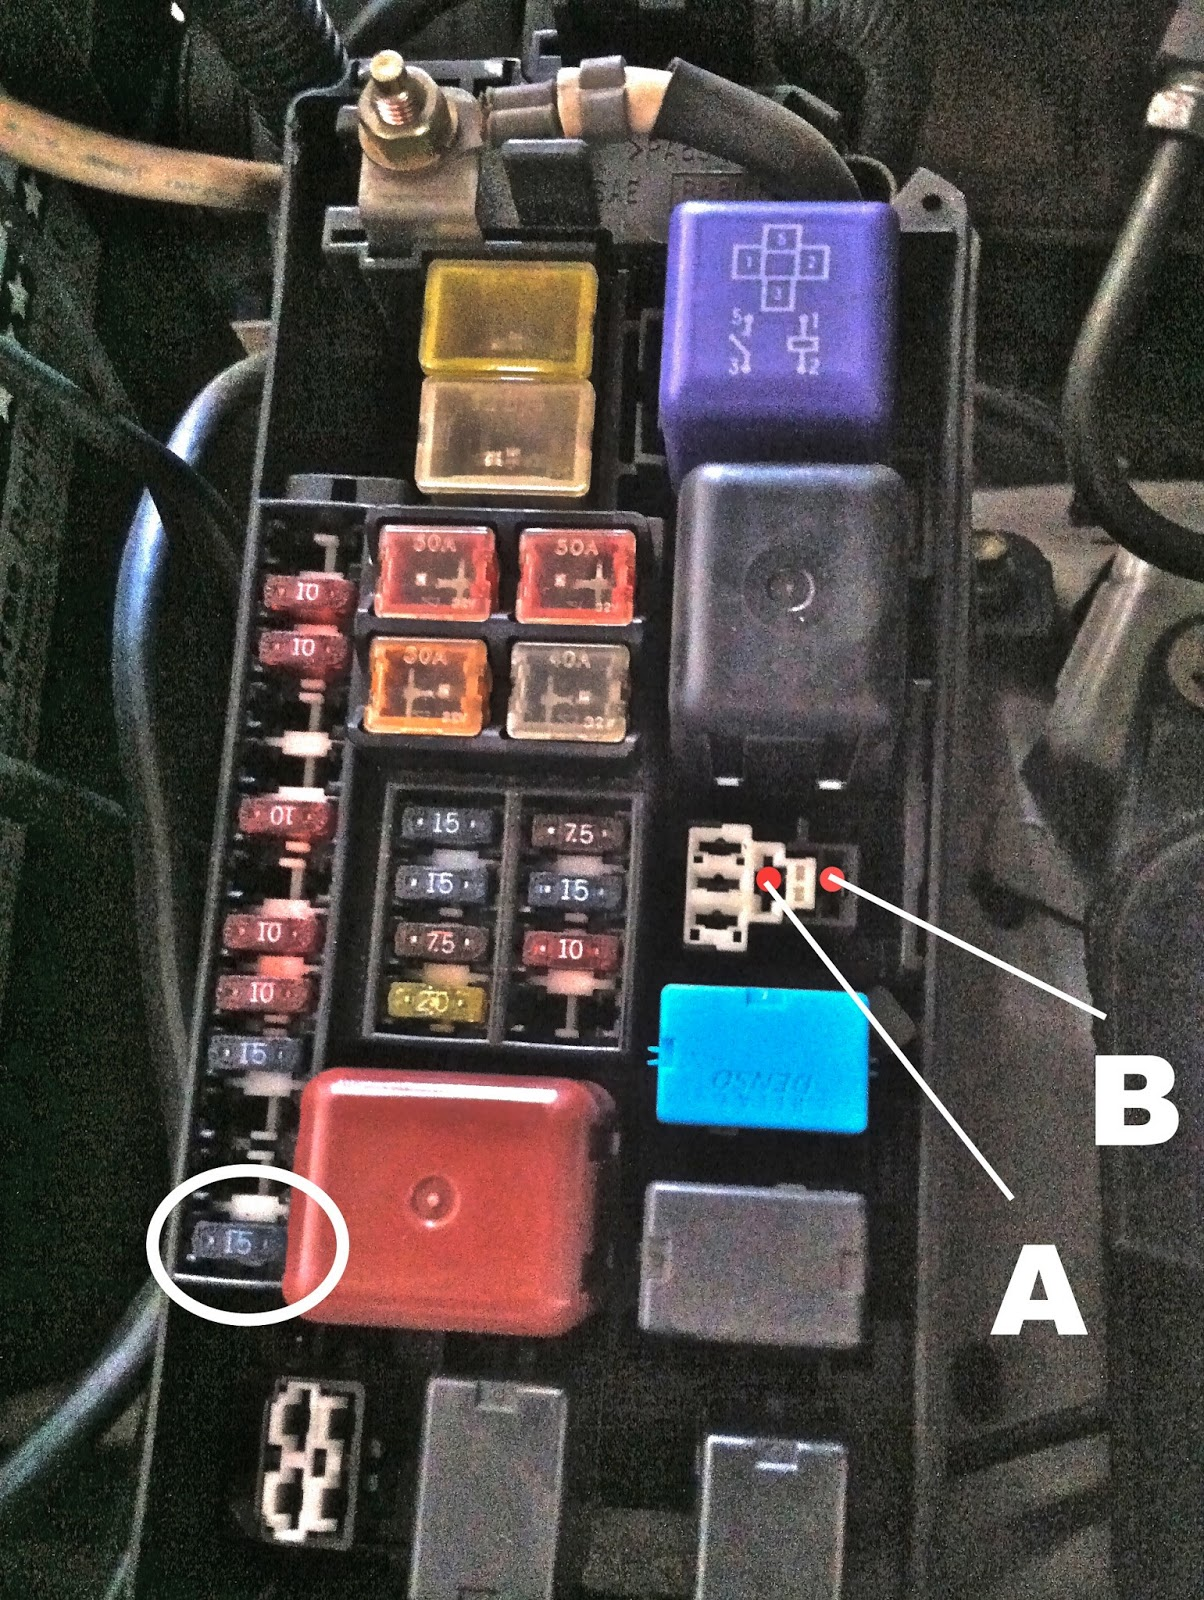 05 toyota corolla wiring diagram html with 1995 2002 Toyota 4runner Fog Light on 2015 Camry Turn Signal Side Mirrors Wiring Diagram likewise 144006 What Connector Attached Horn Harness additionally 1996 Toyota Camry Spark Plug Wire Diagram together with 2003 Toyota Tundra Fuse Box Diagram also Ac Clutch Coil Test.